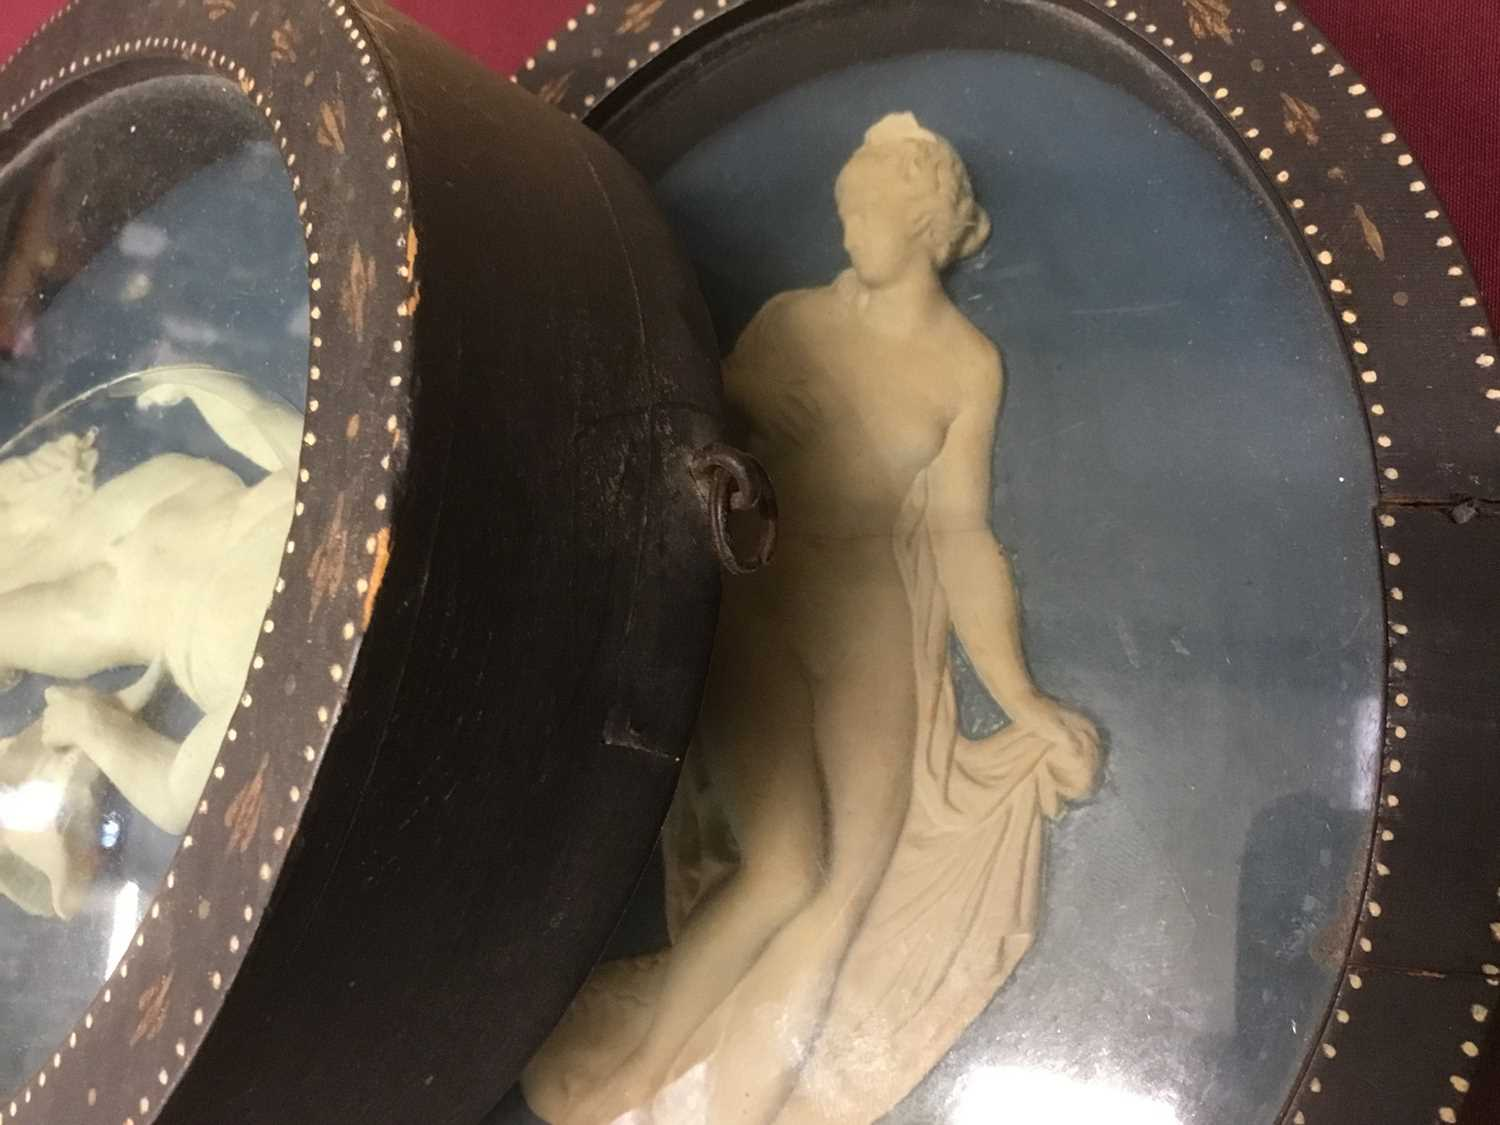 Pair of late 18th/early 19th century composition oval relief plaques depicting classical figures, in - Image 11 of 11